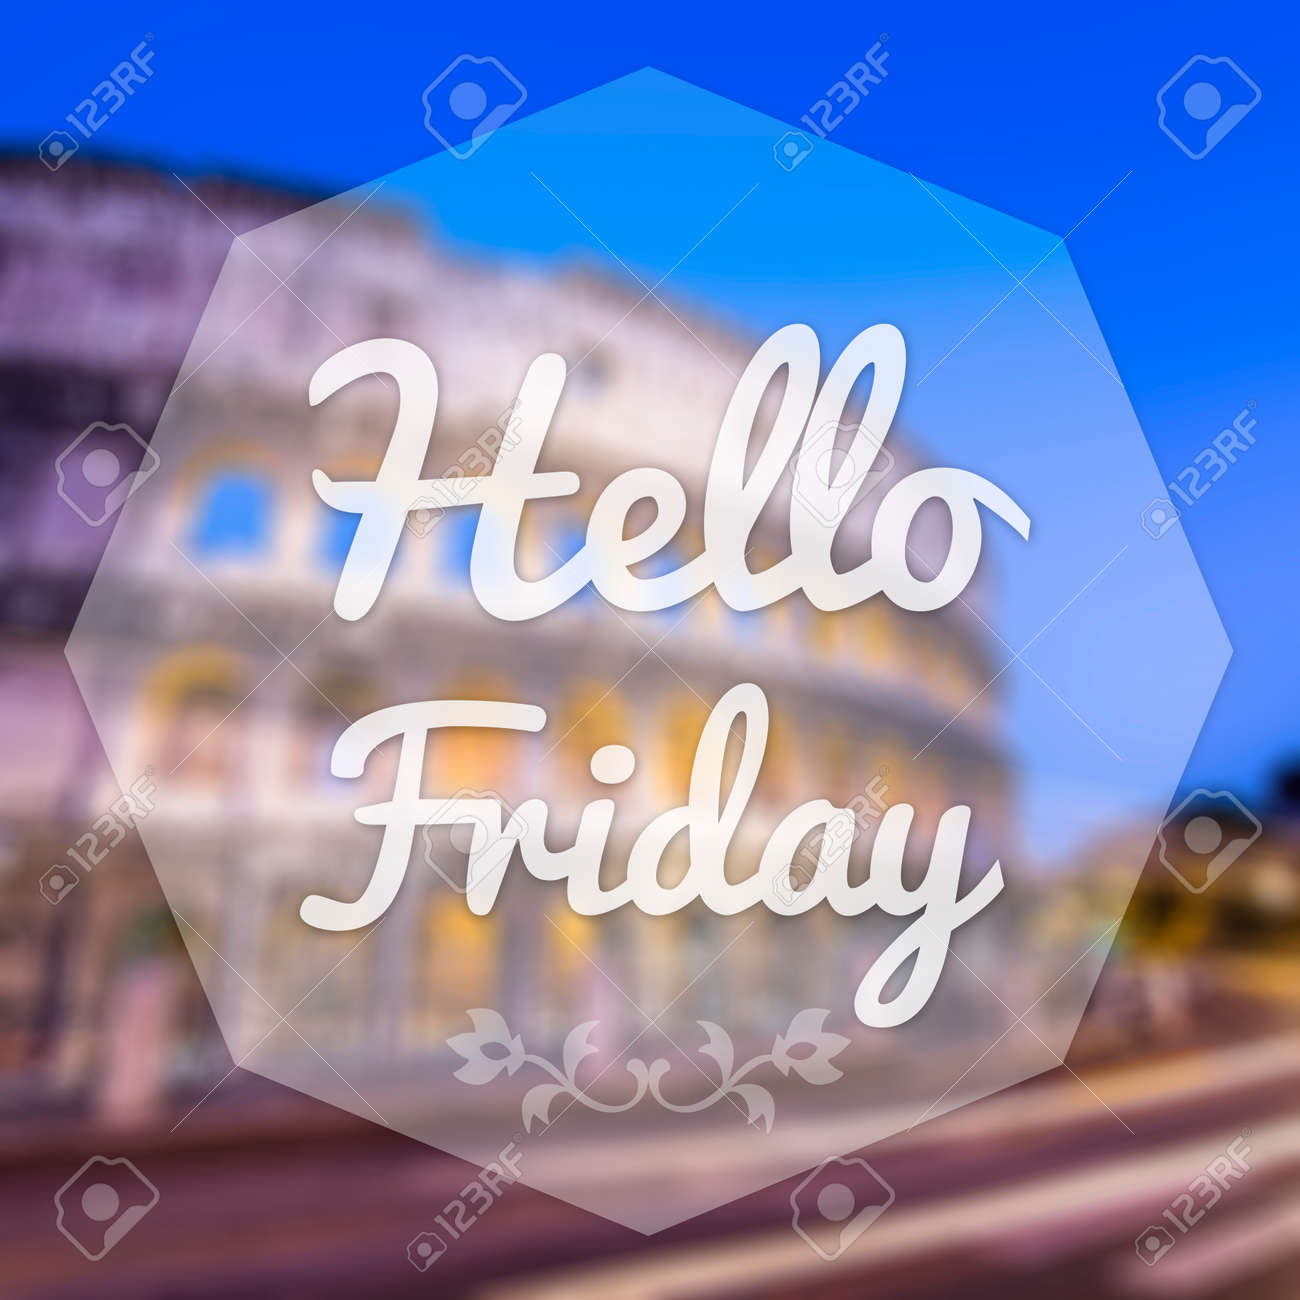 Good Morning Friday On Blur Background Greeting Card Stock Photo